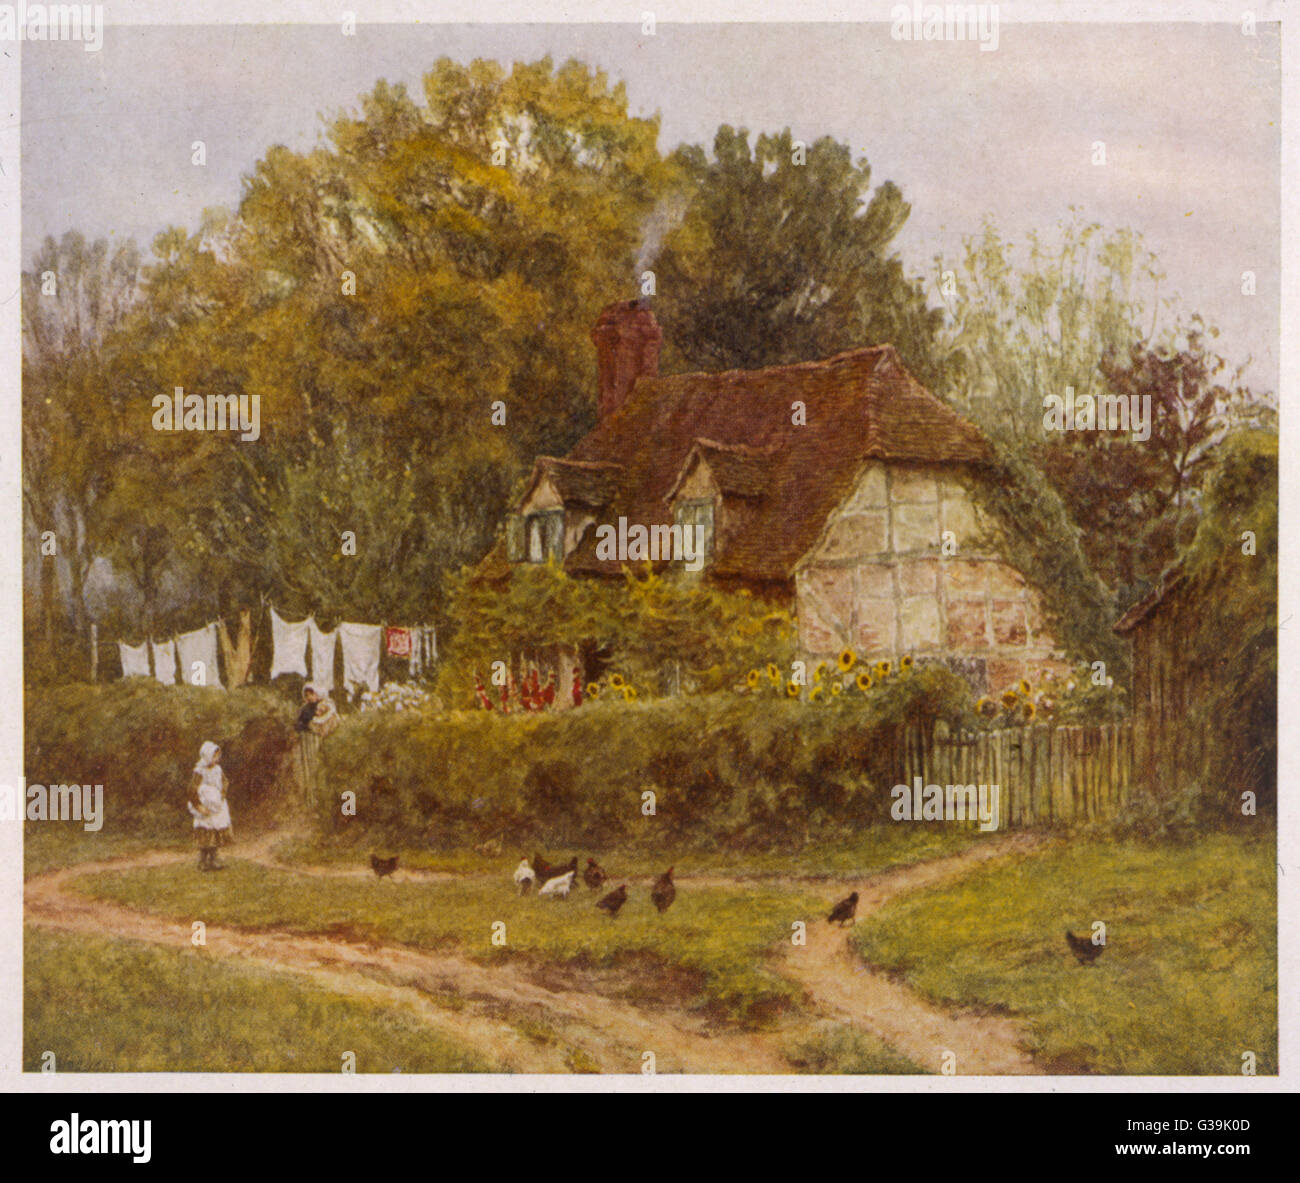 A country cottage  on washing day         Date: 1888 - Stock Image